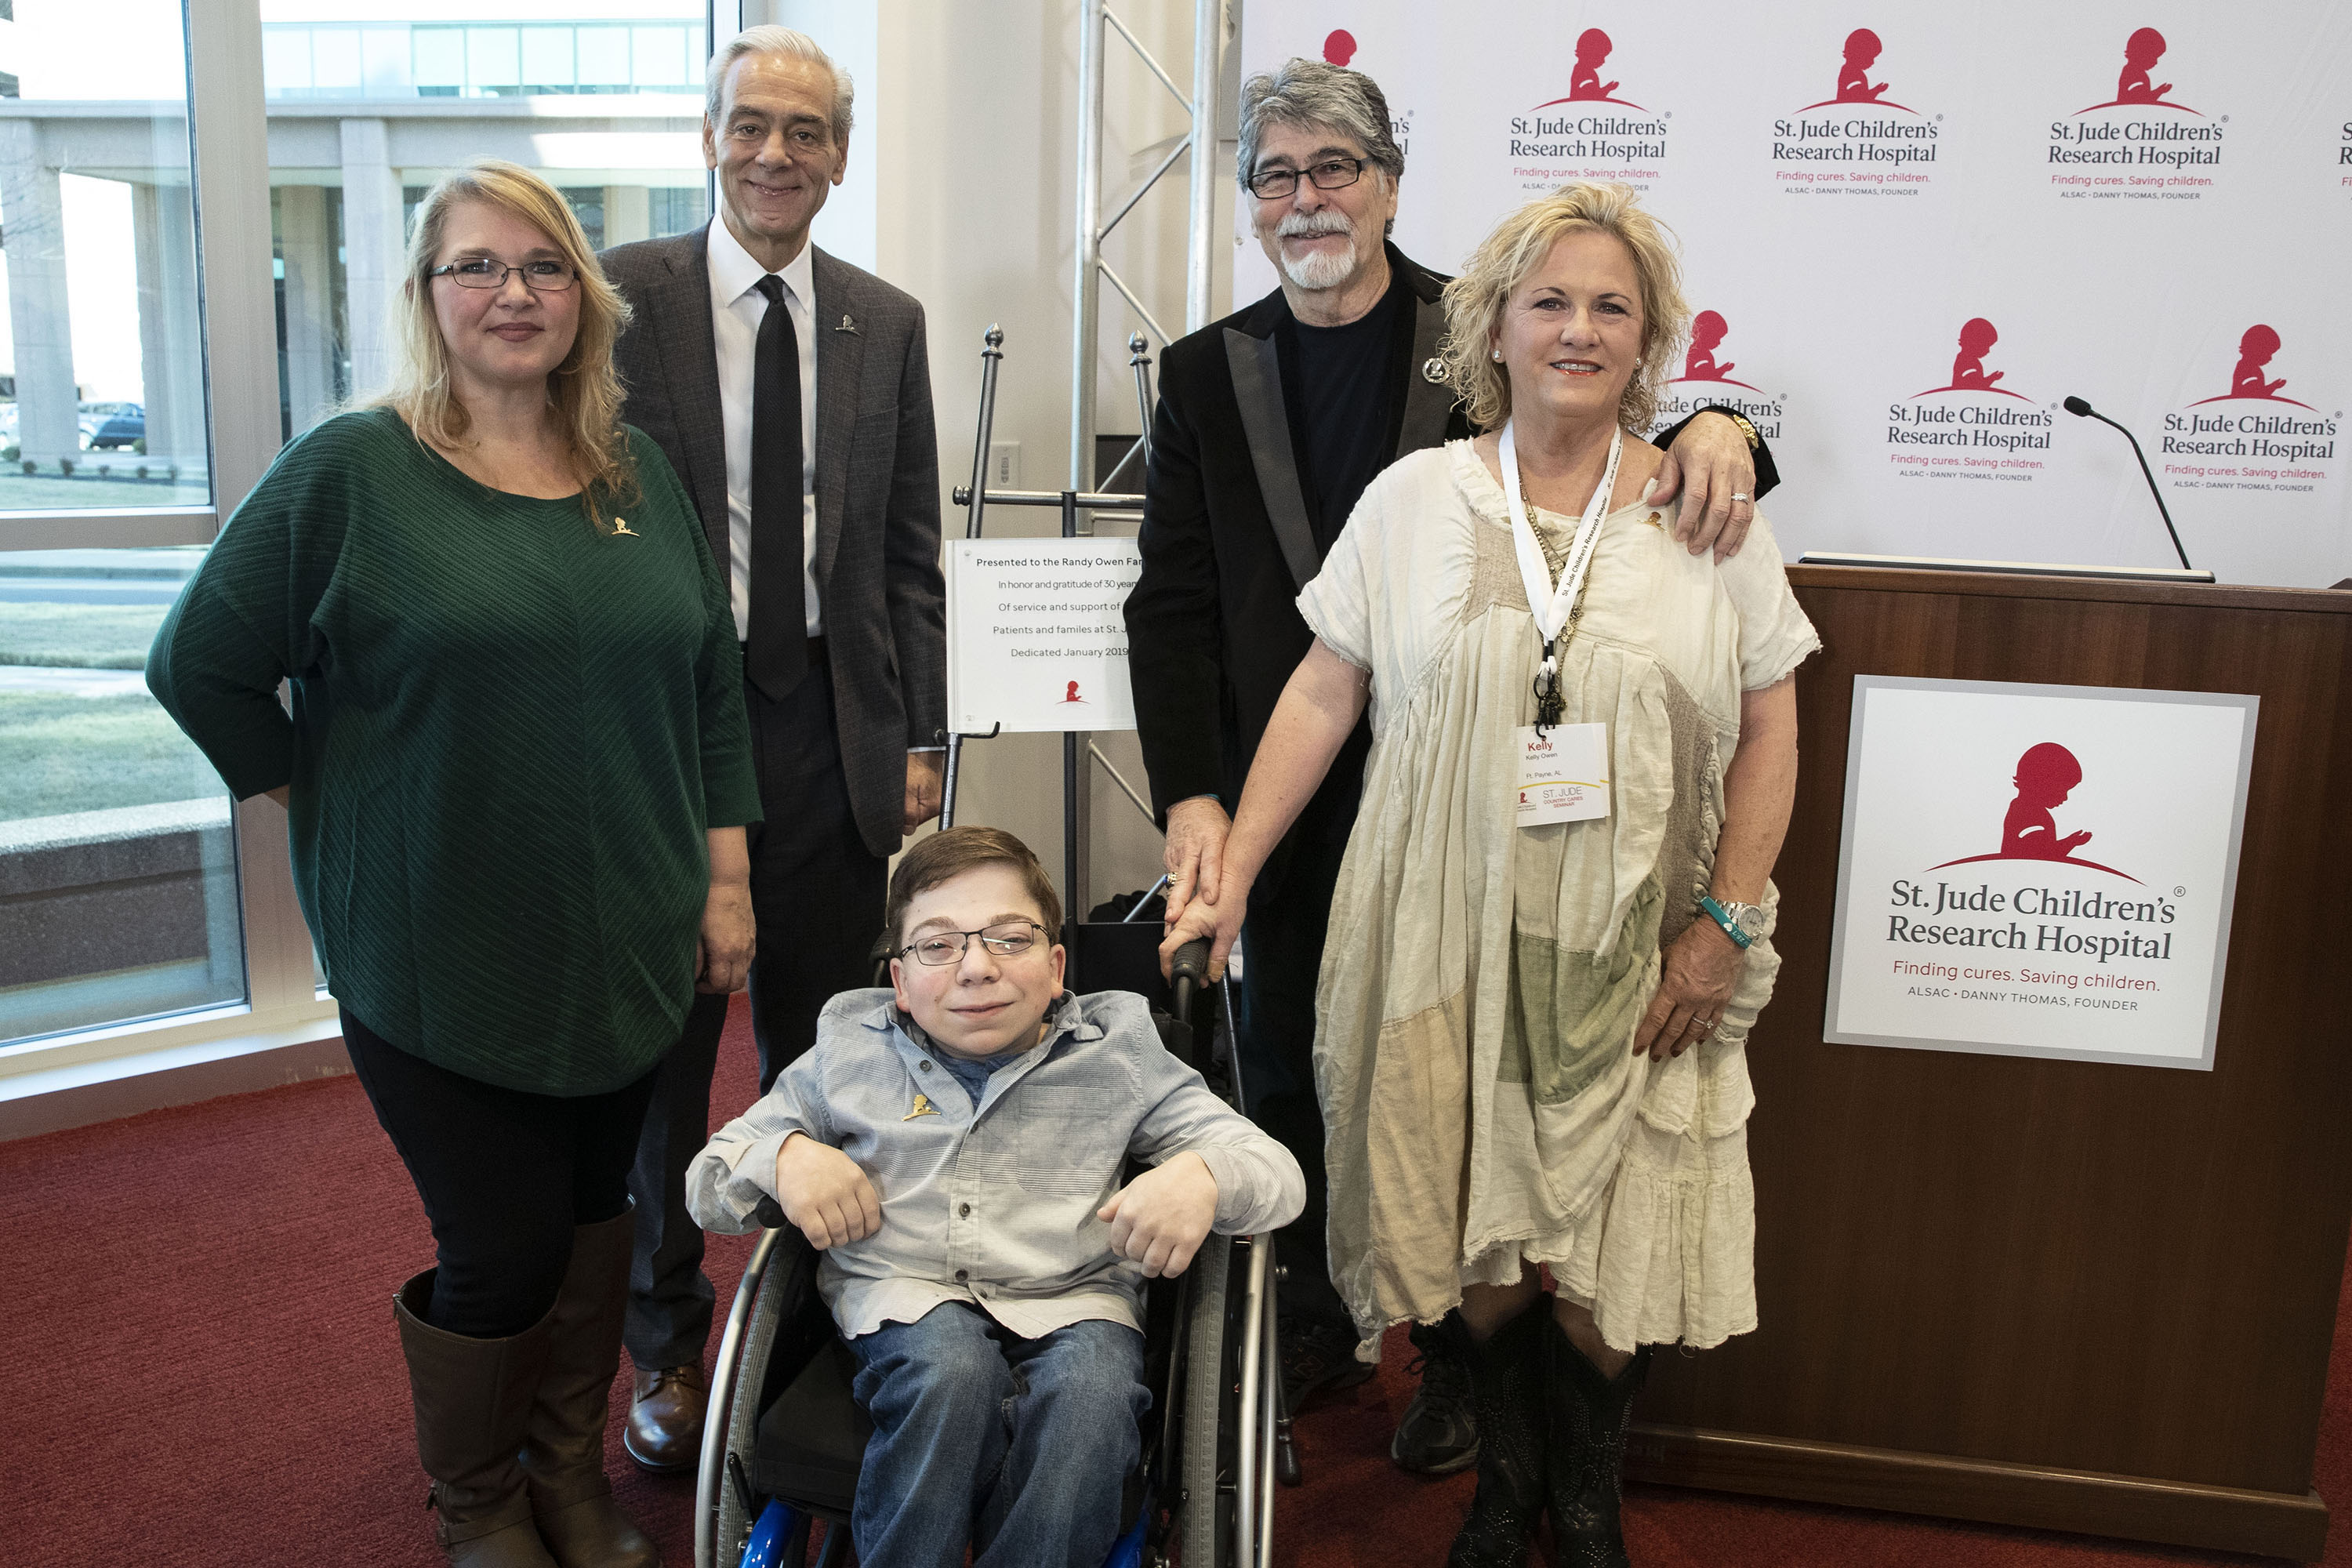 St. Jude Children's Research Hospital® Celebrates 30th Anniversary of Country Cares for St. Jude Kids® with Dedication of Patient Family Room to ALABAMA's Randy Owen